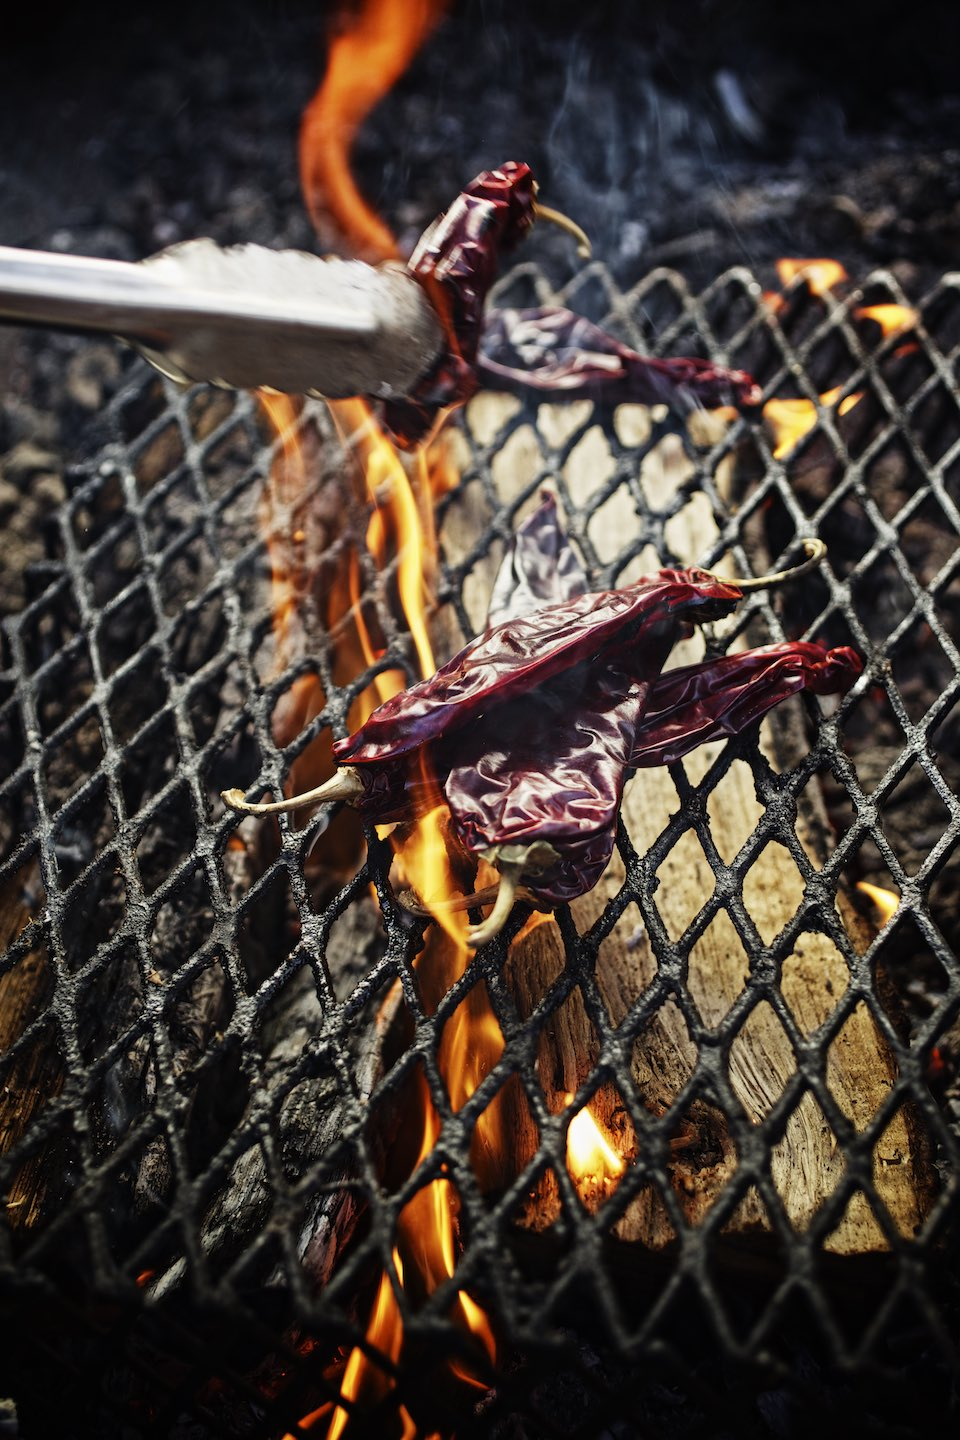 Jody Horton Photography - Chilies charring on a wood fire.